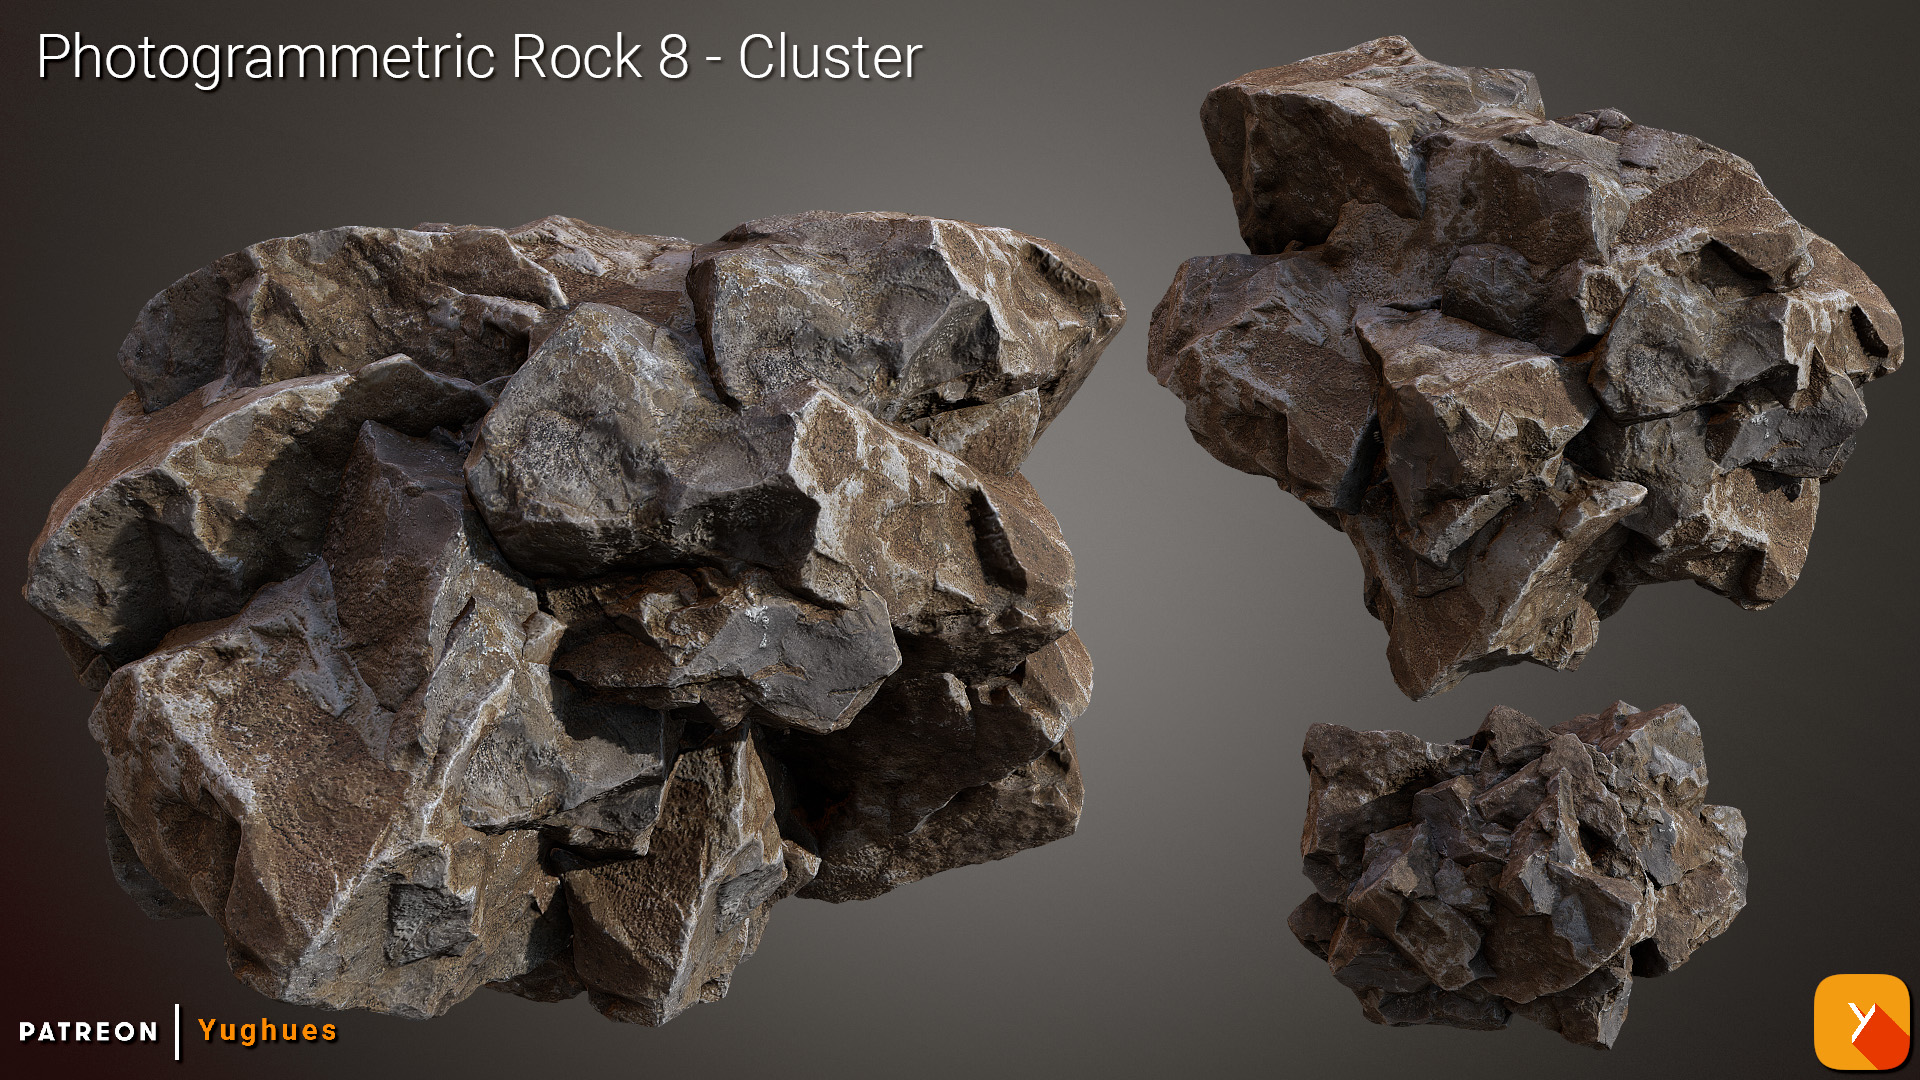 [Free] Photogrammetric Rock 8 - Cluster by Yughues